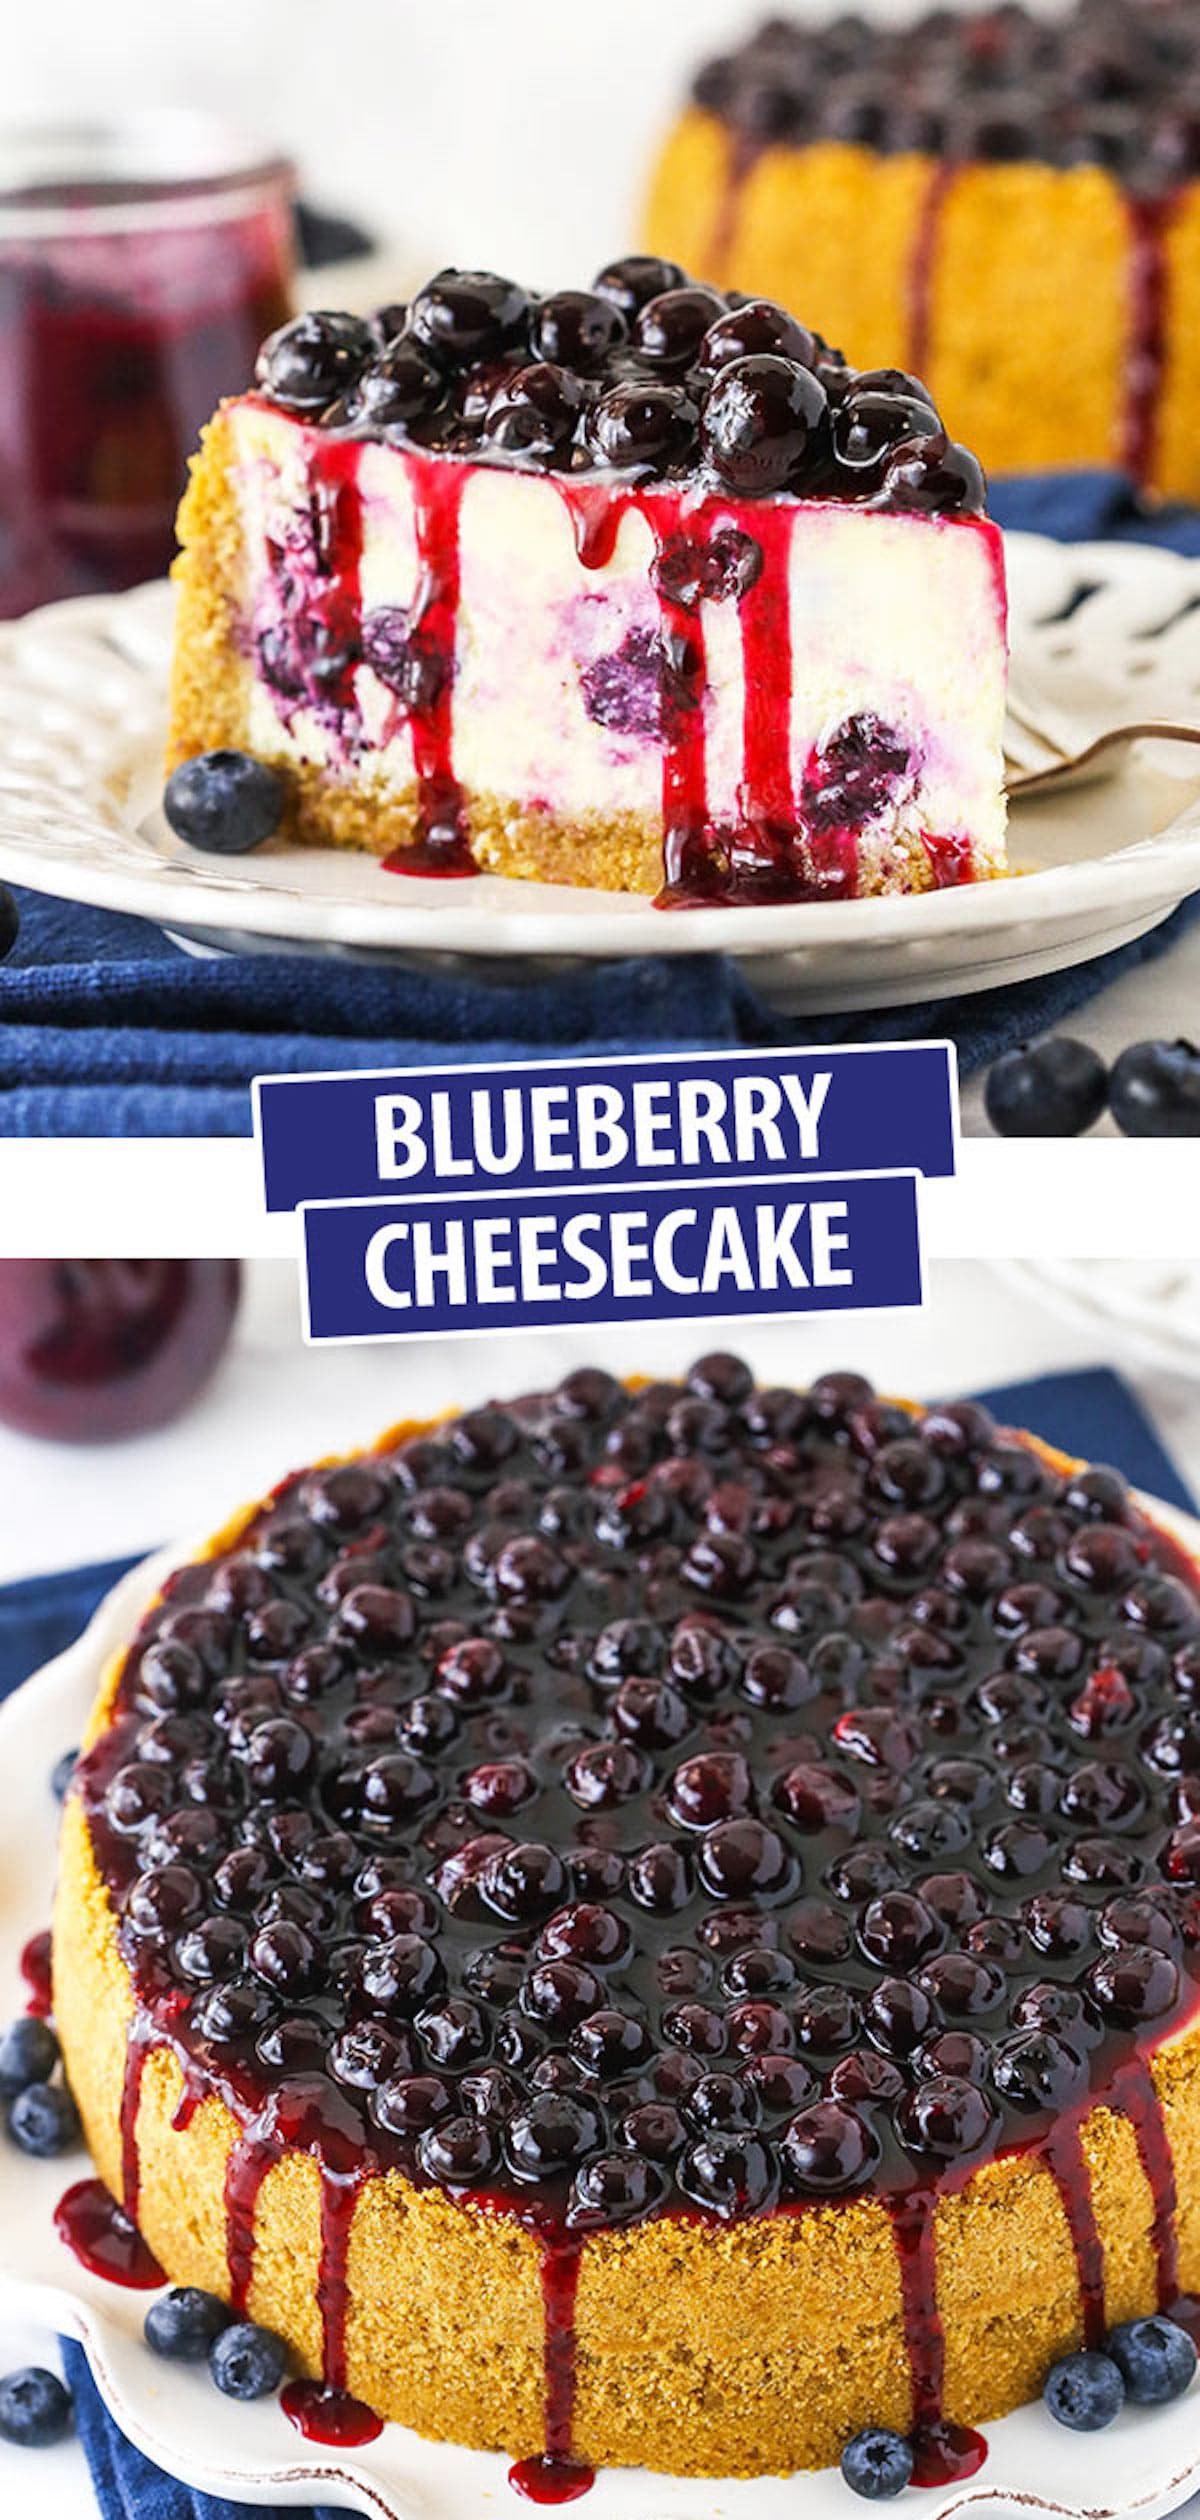 A Collage of Two Images of Baked Blueberry Cheesecake with Text Introducing the Cake